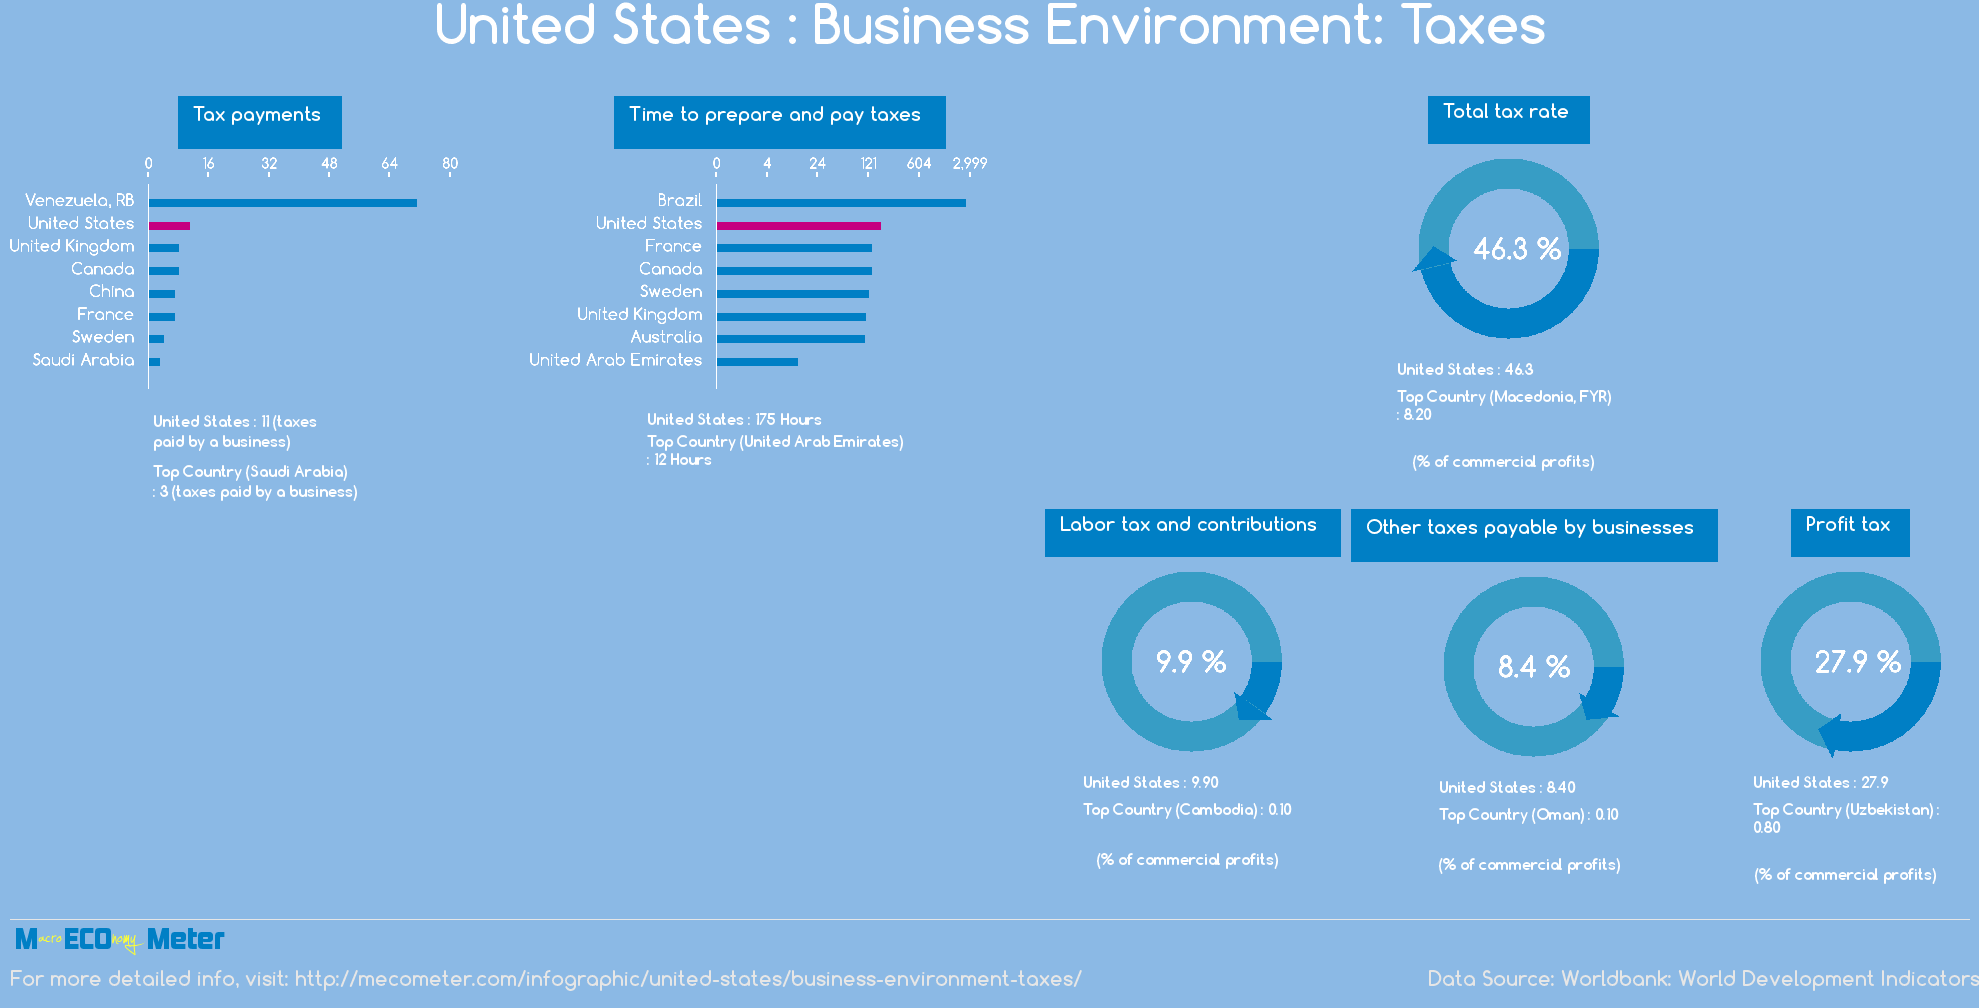 United States : Business Environment: Taxes